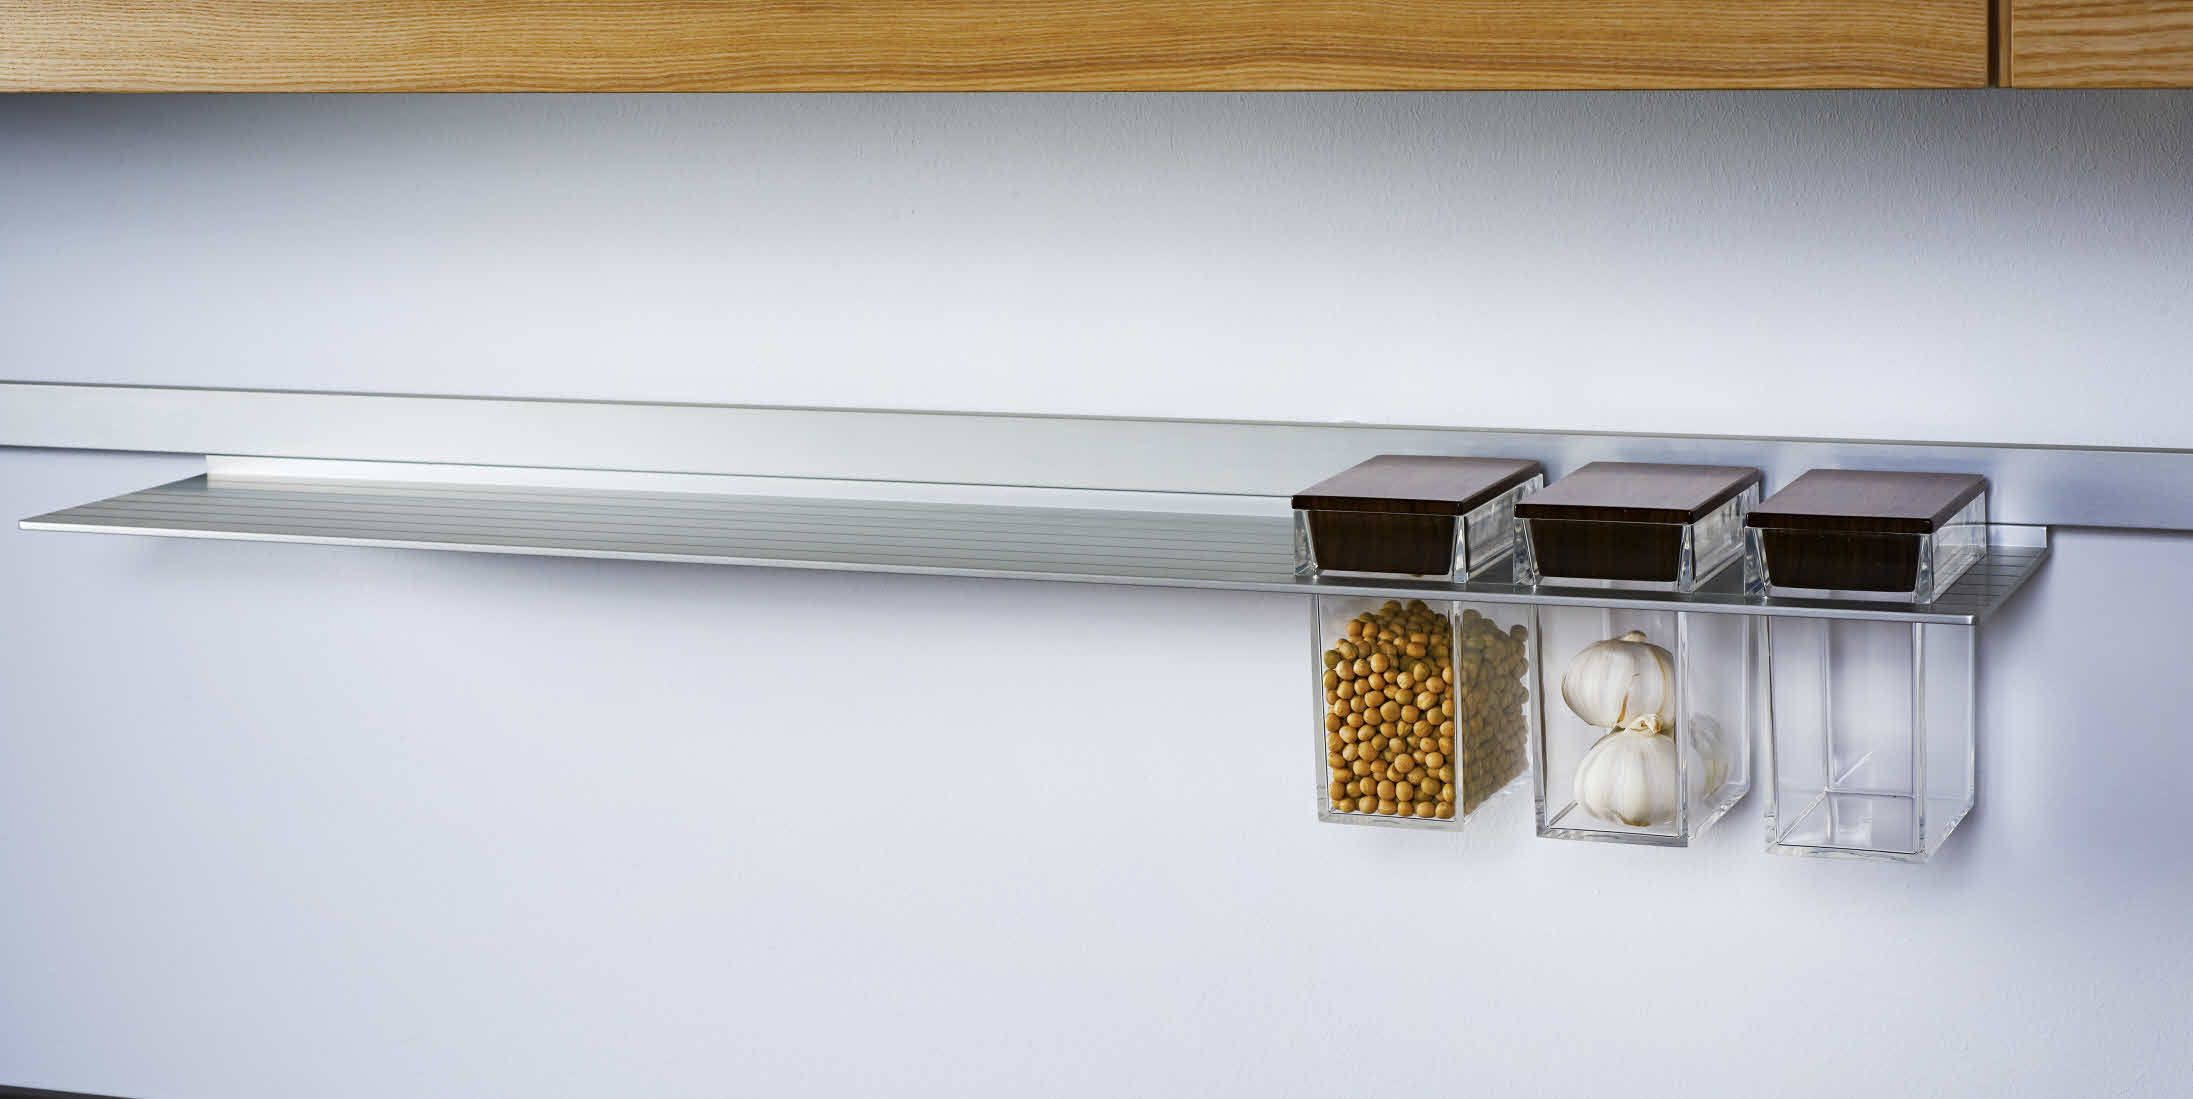 Küchen Aufbewahrungsboxen Poggenpohl Accessories Wall System With In Shelf Integrated